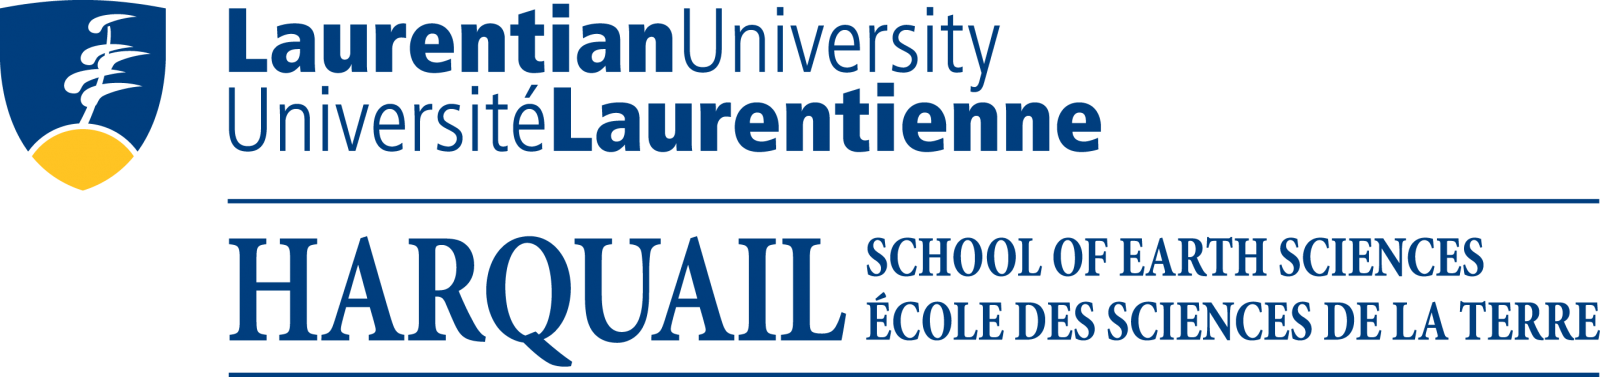 Laurentian University Universit? Laurentienne Harquail School of Earth Sciences ?cole des sciences de la terre